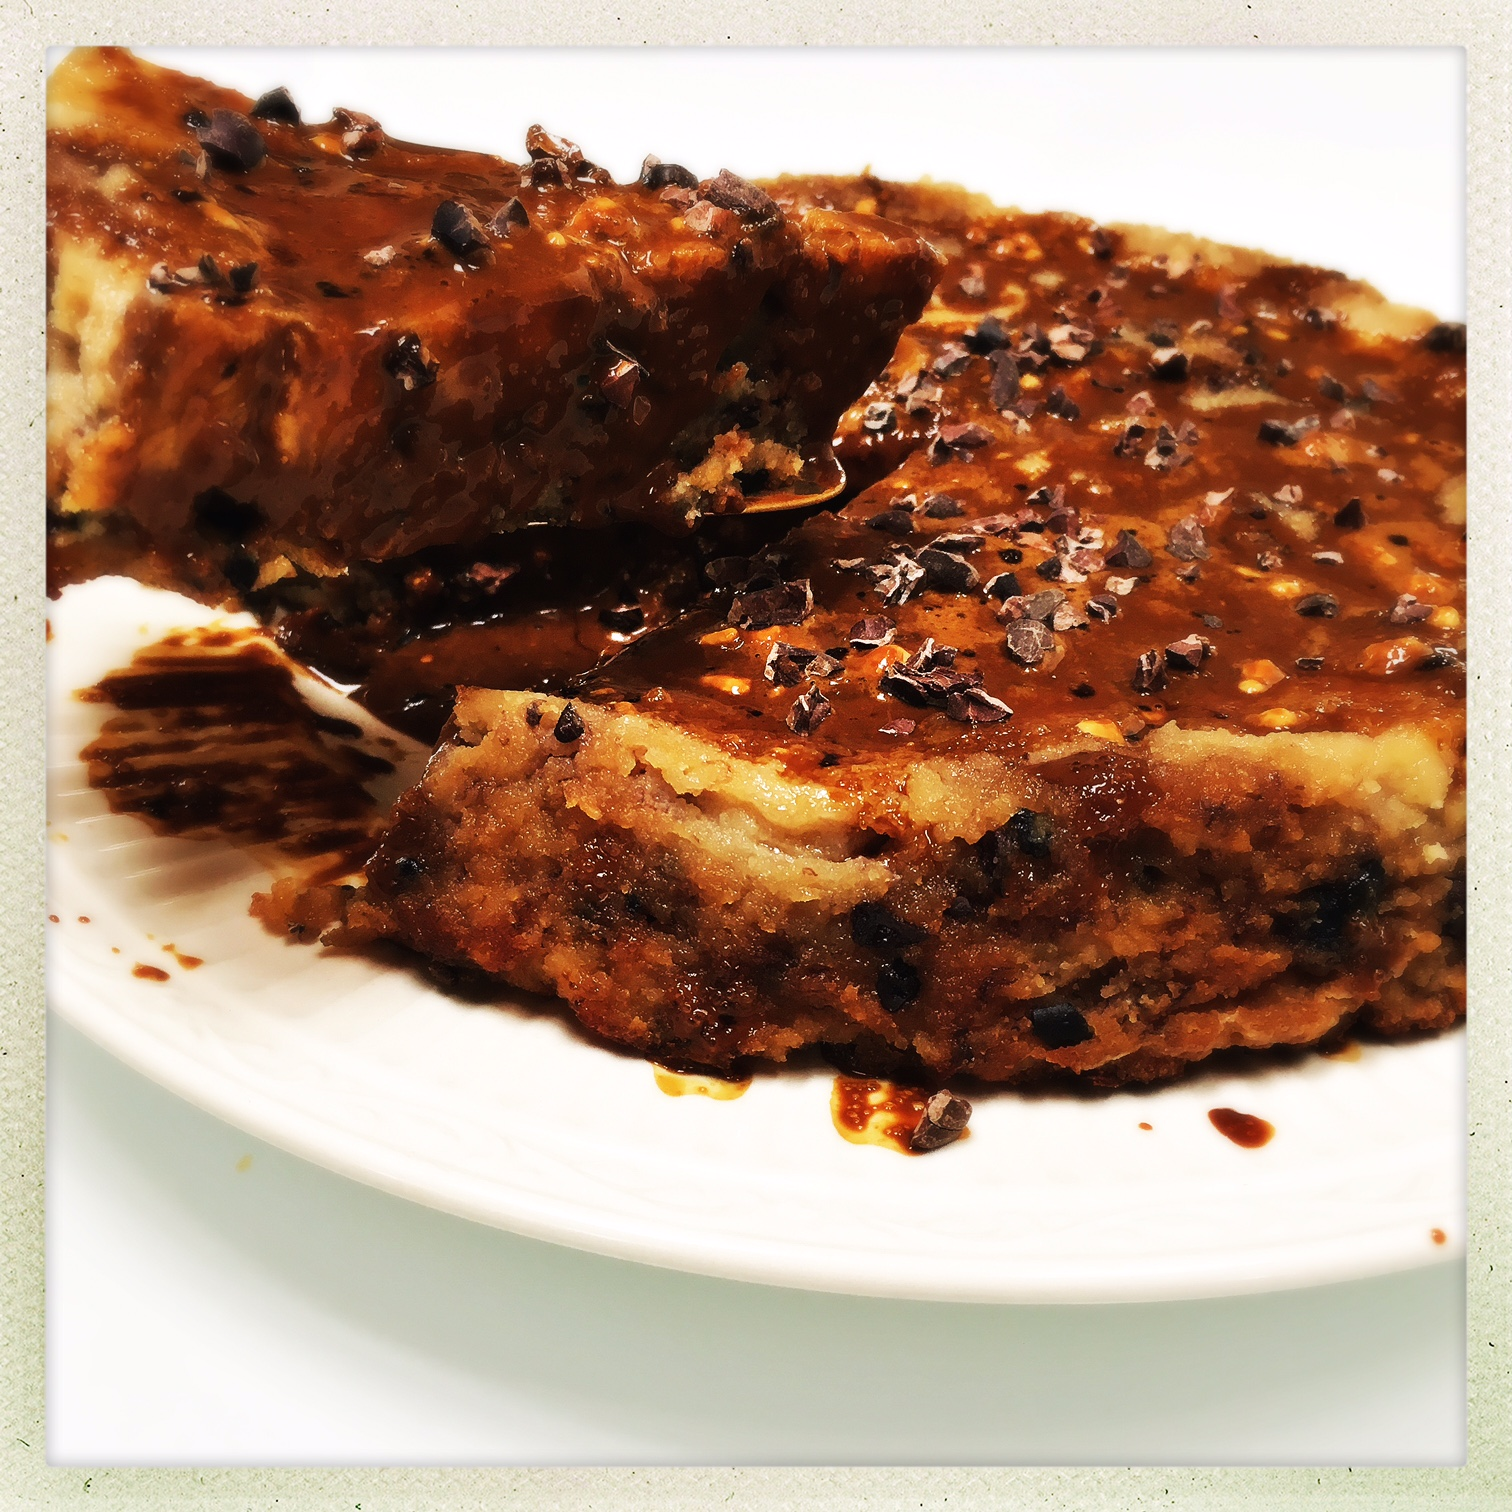 upside down banana cake with espresso drizzle2.jpg